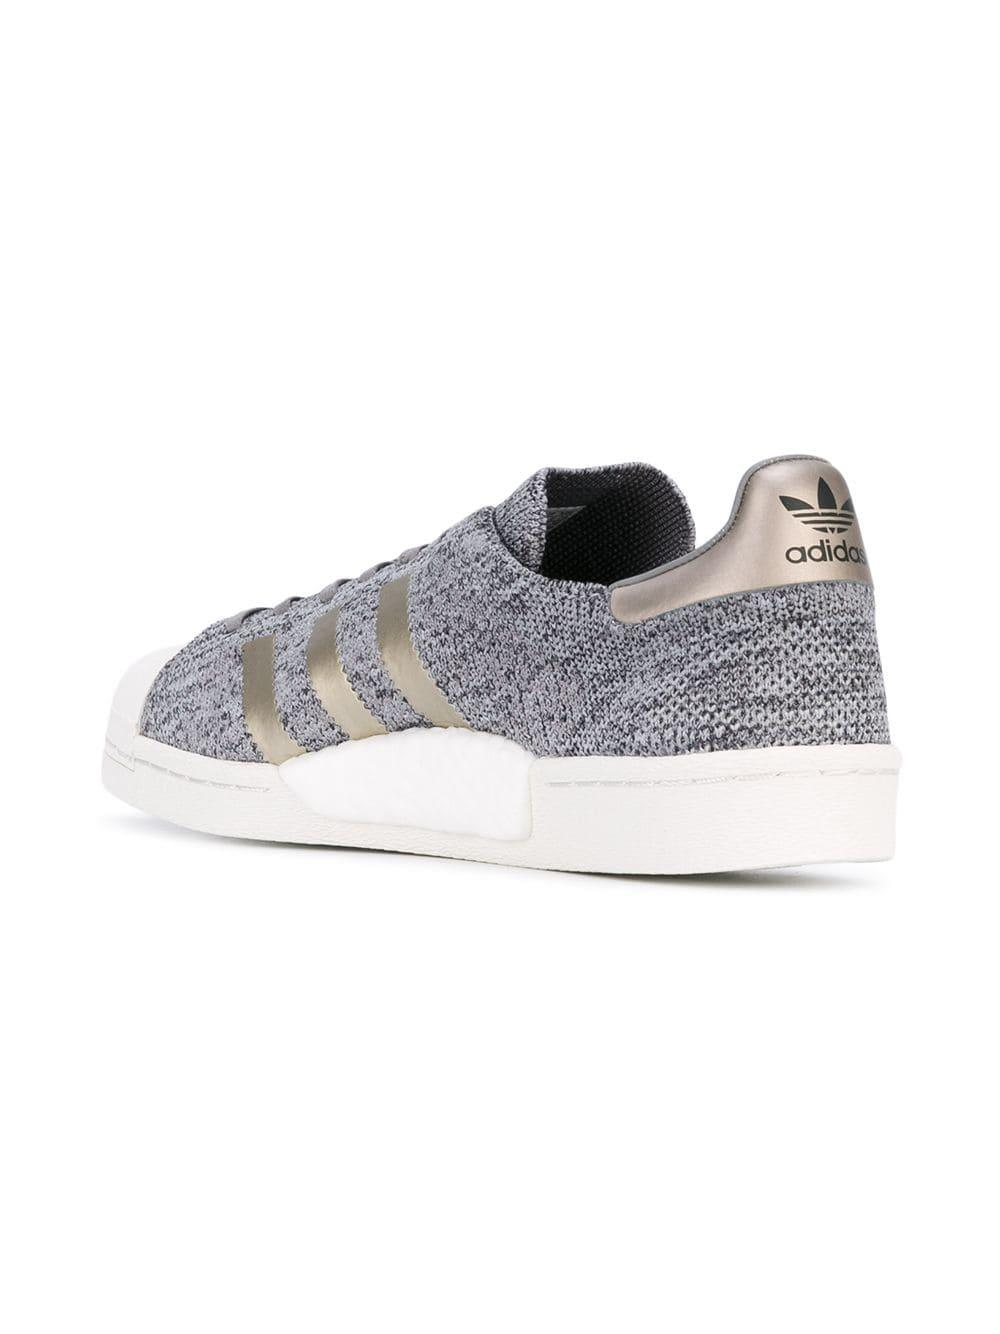 adidas Cotton Superstar Boost Trainers in Grey (Grey)